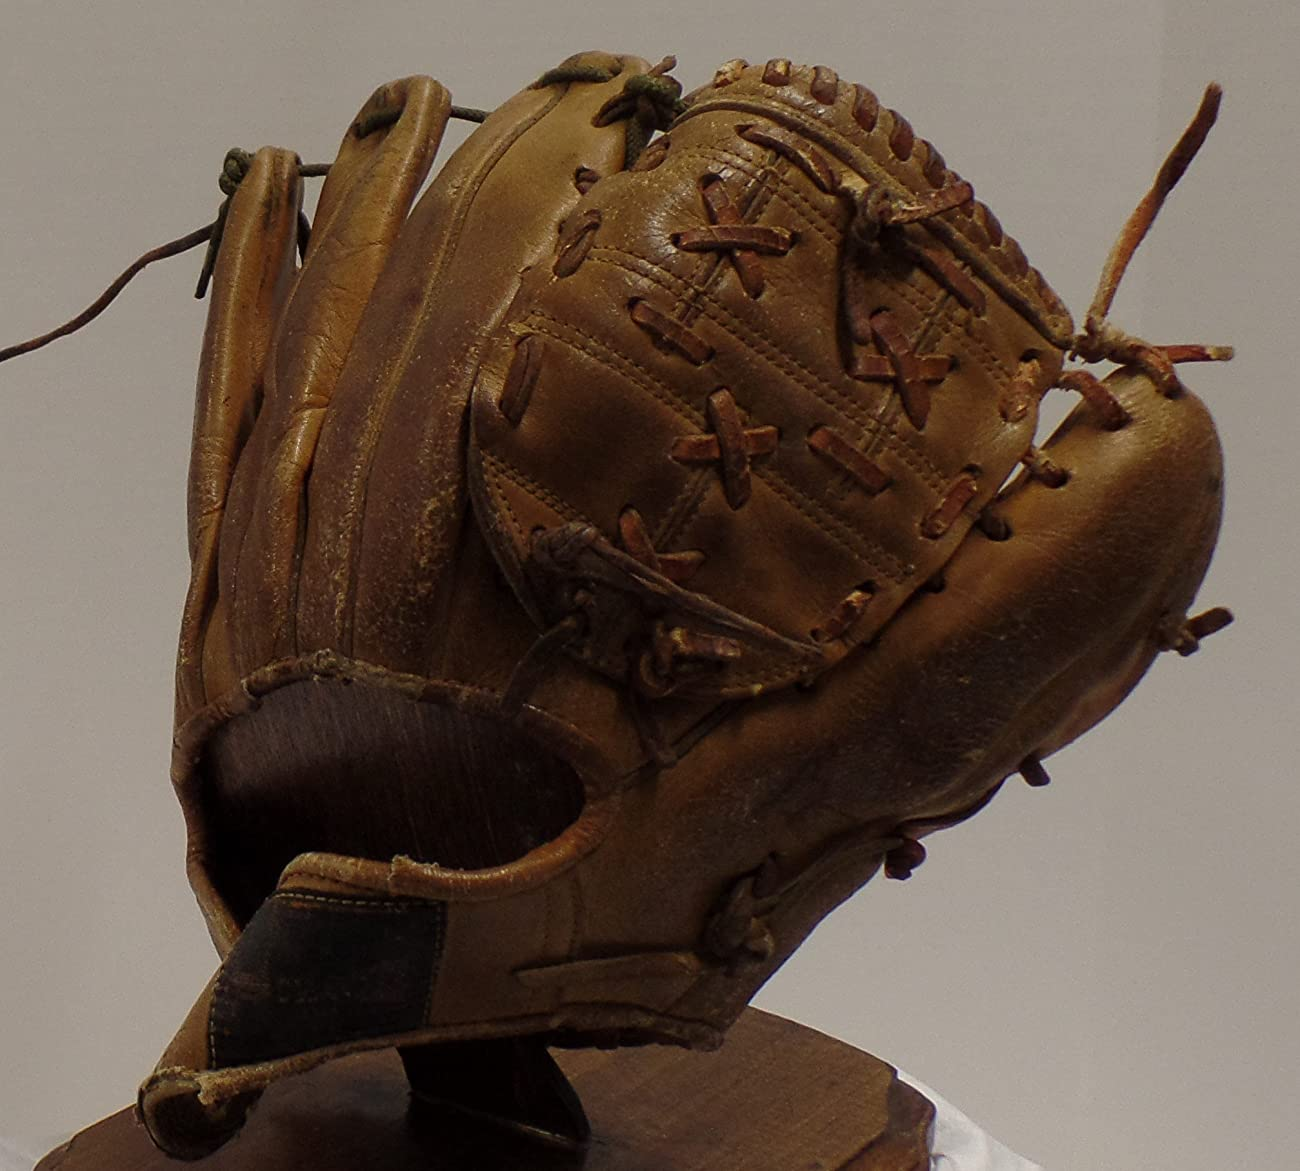 Vintage Clete Boyer Autograph Model 1035 Baseball Glove - Great for Mancave or Baseball Themed Decor (Free Shipping) 3